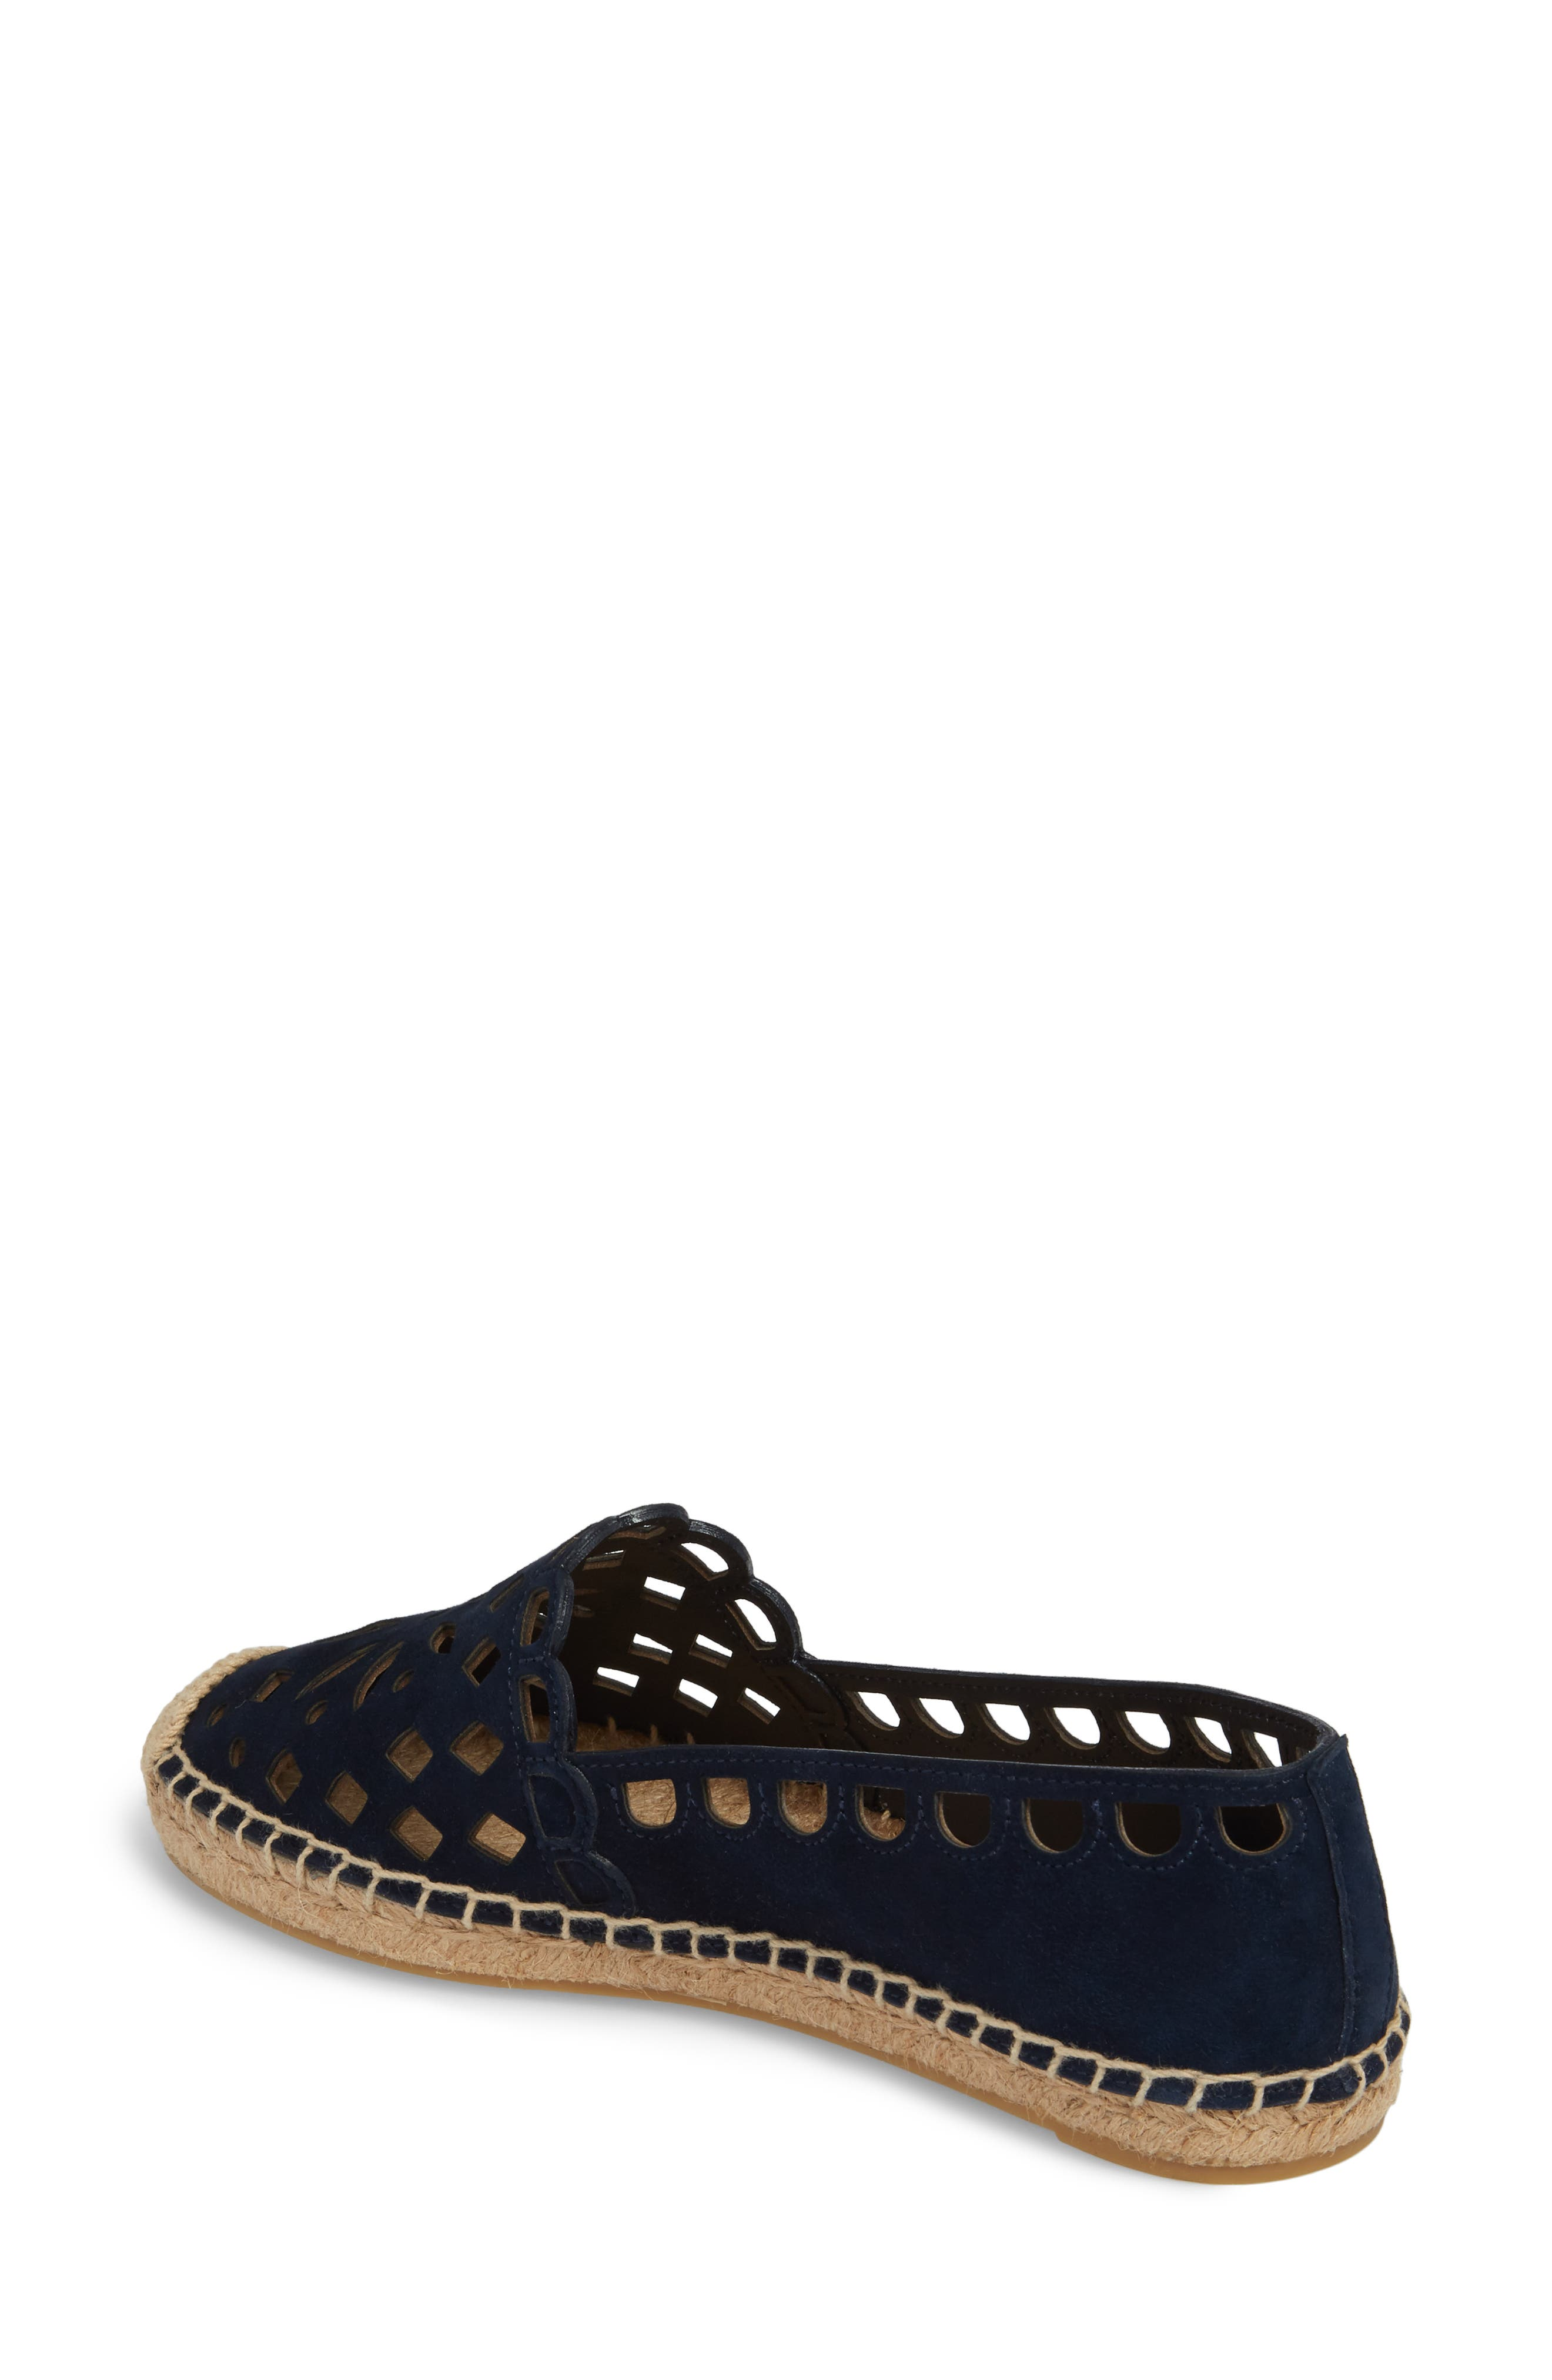 May Perforated Espadrille Flat,                             Alternate thumbnail 2, color,                             430